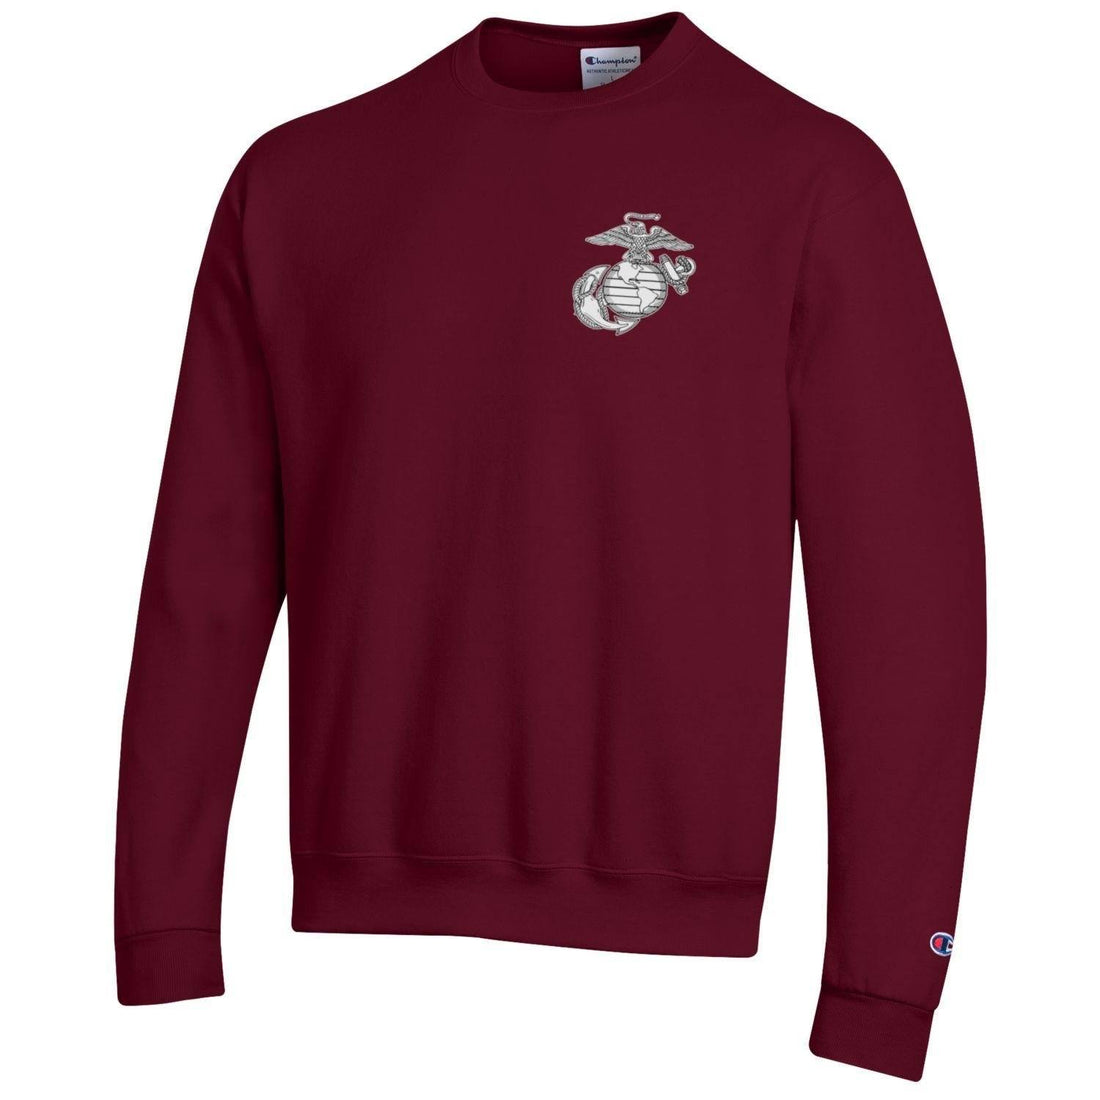 Champion Freedom Isn't Free MAROON 2-Sided Power Blend Sweat Shirt - Marine Corps Direct